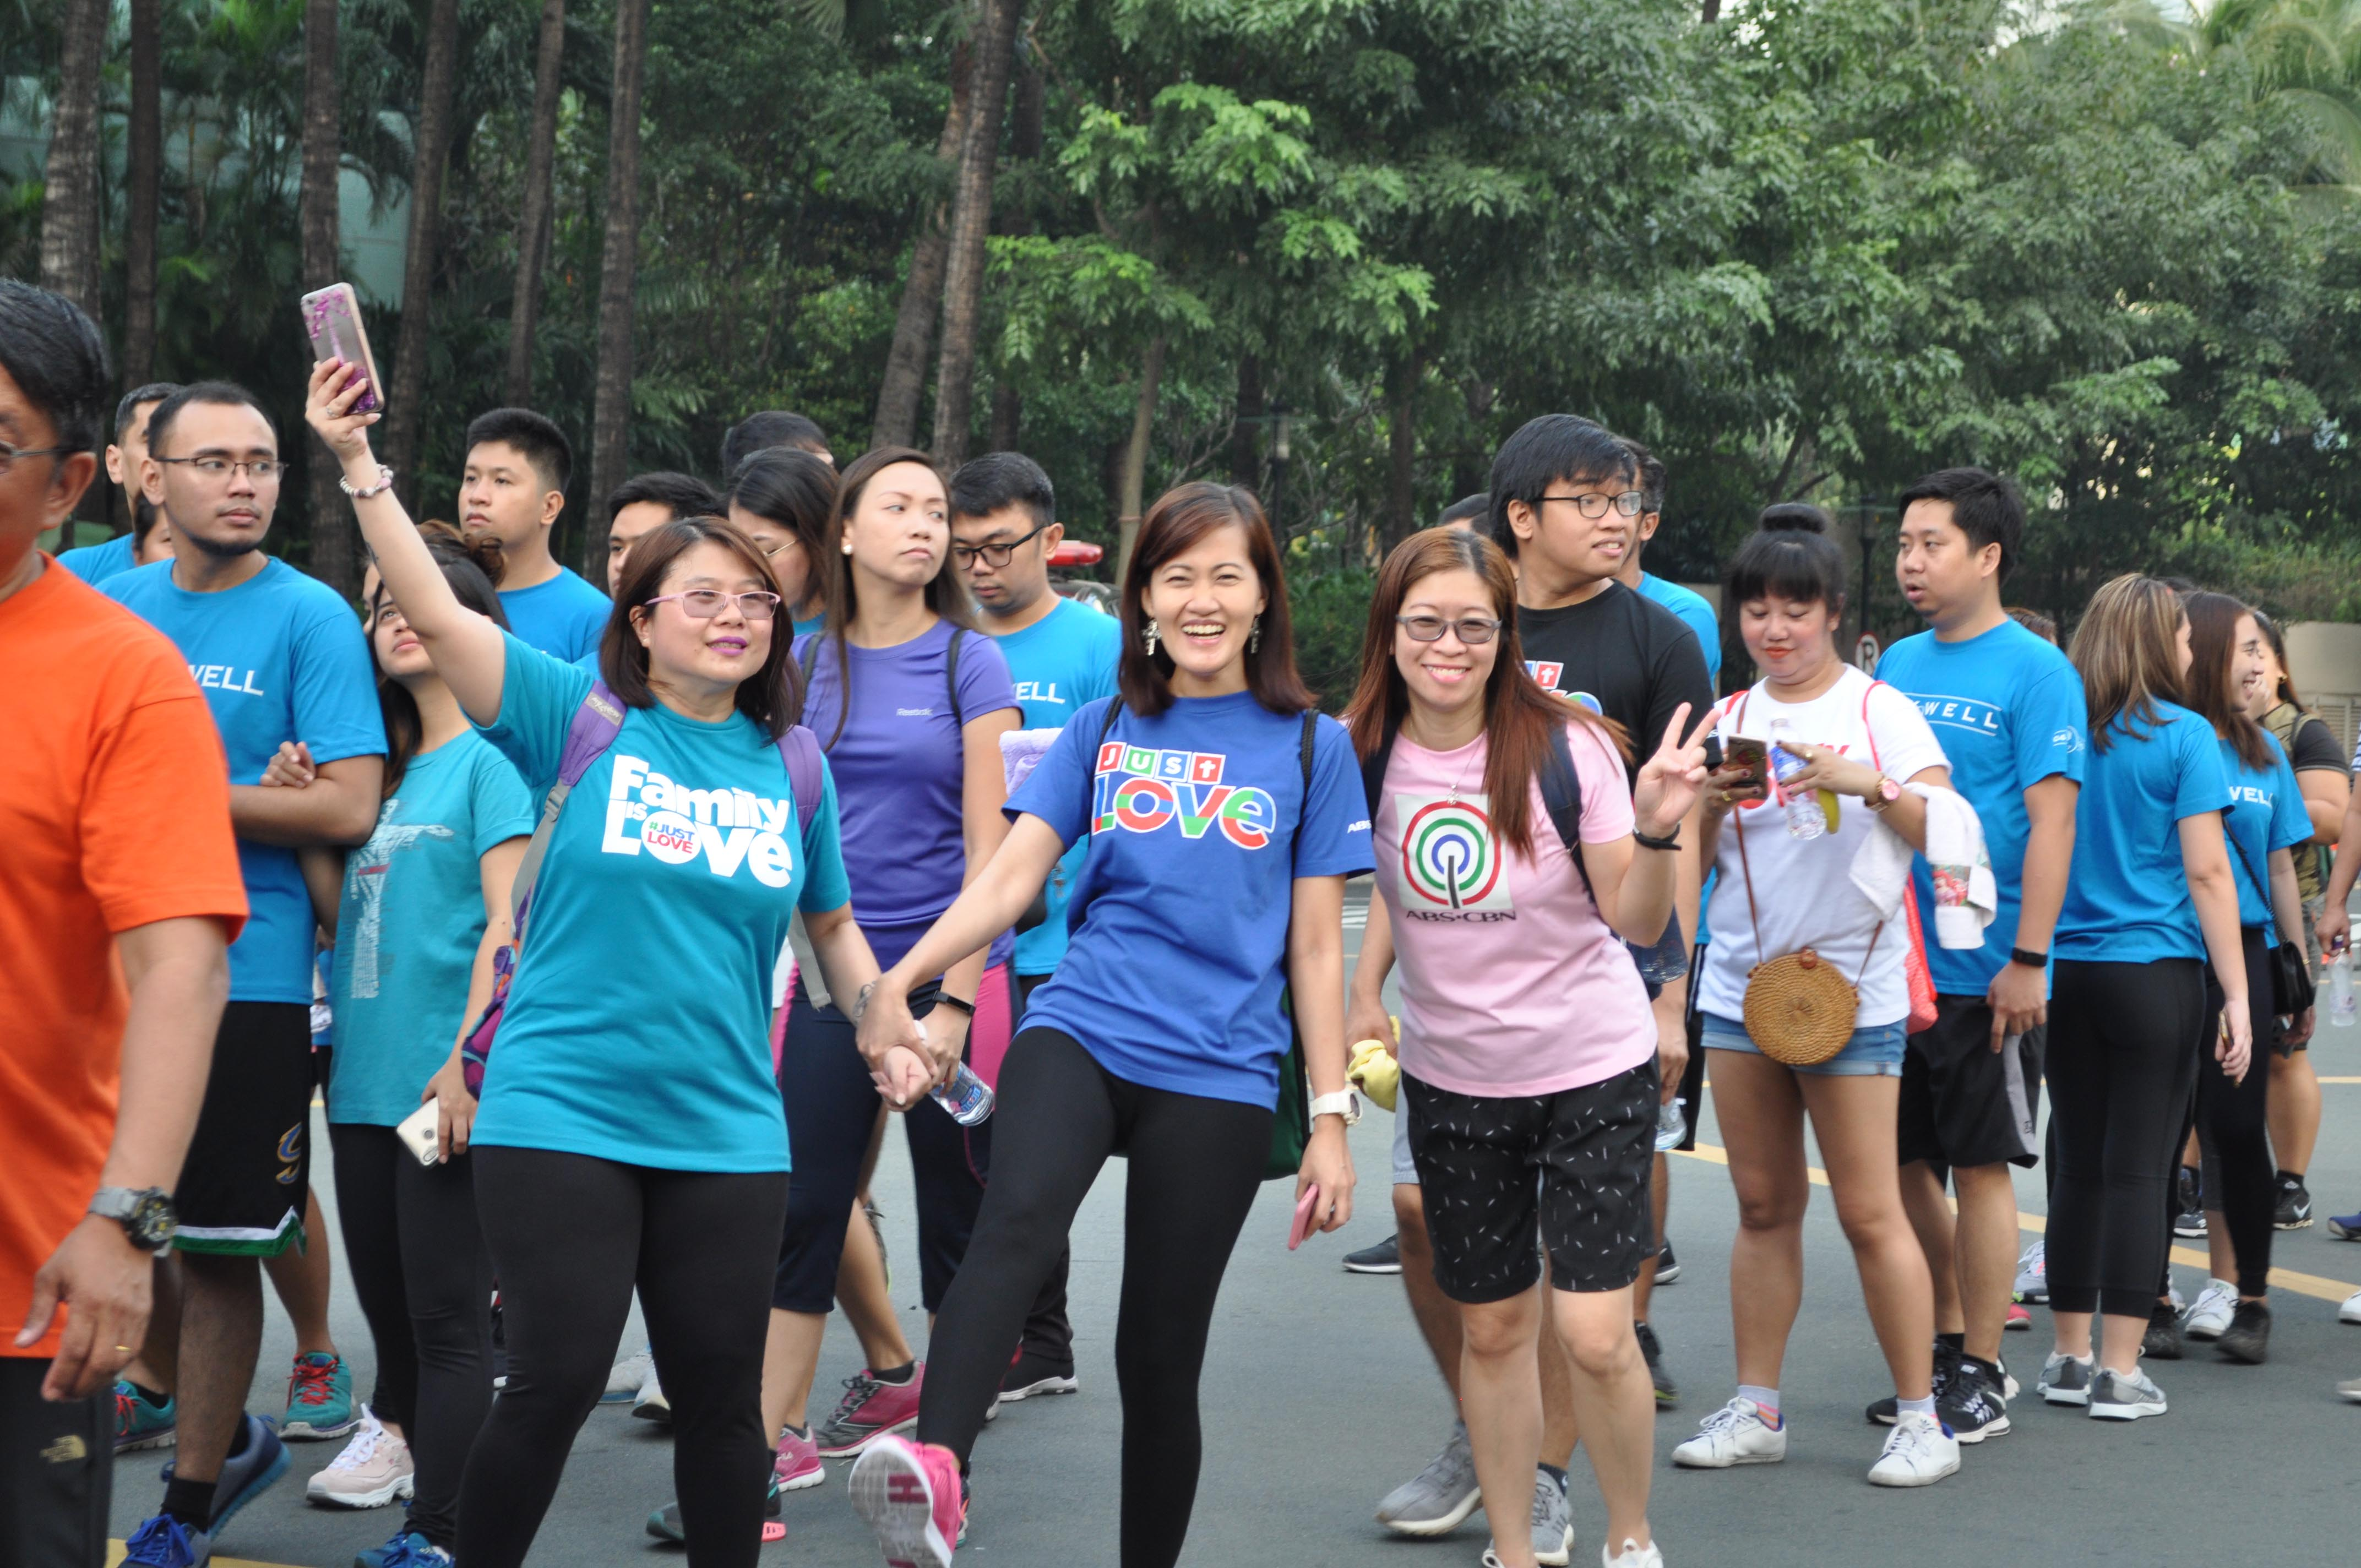 'Family is love' for these Kapamilya walkers